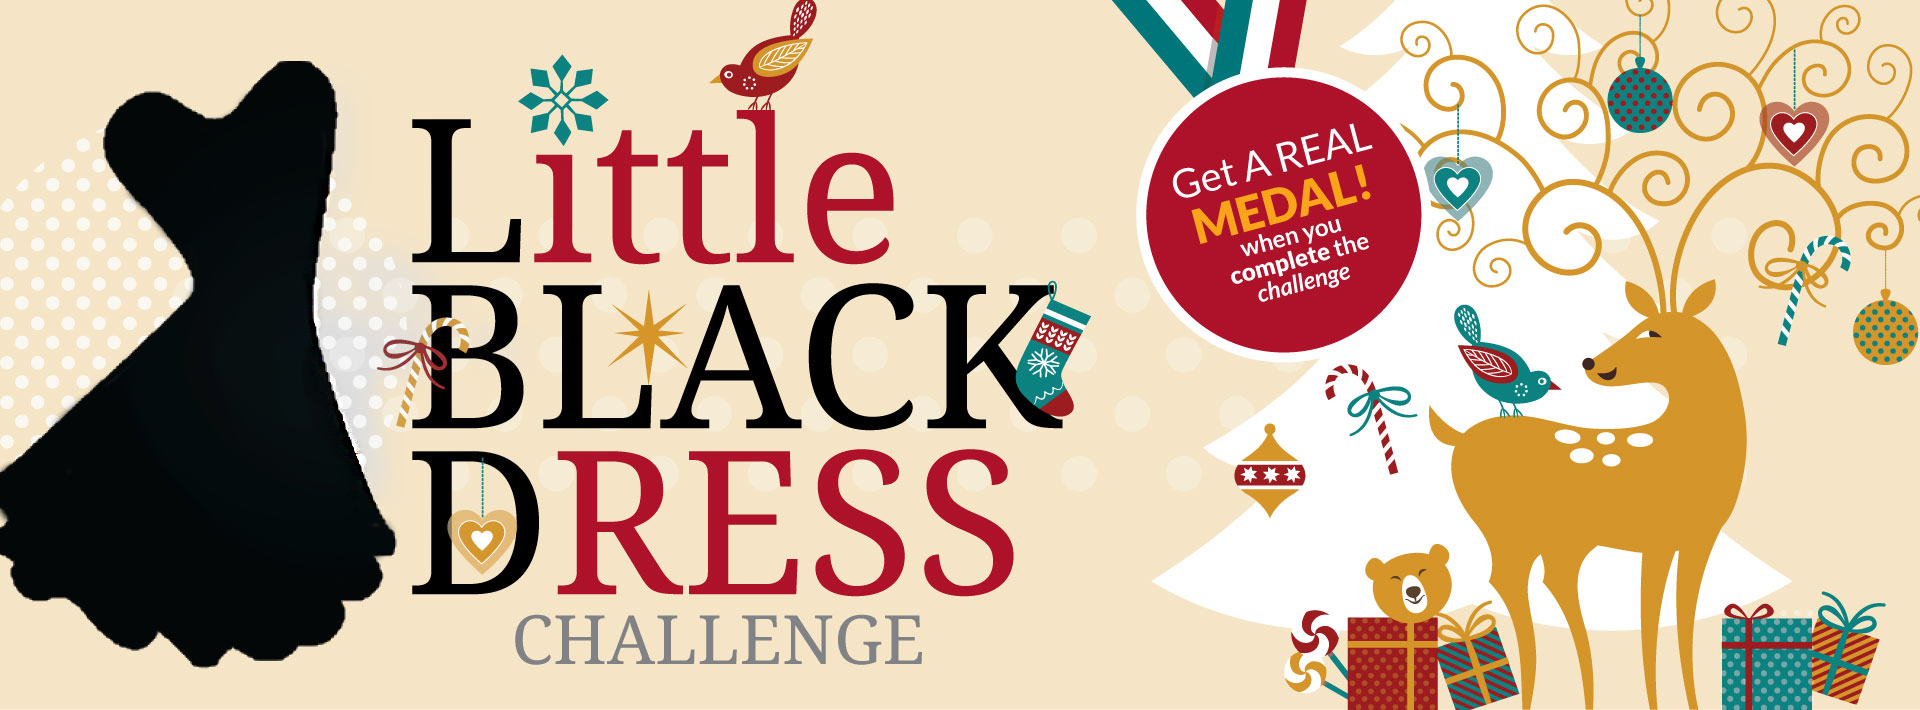 Christmas Challenge.The Little Black Dress Christmas Challenge Weight Loss